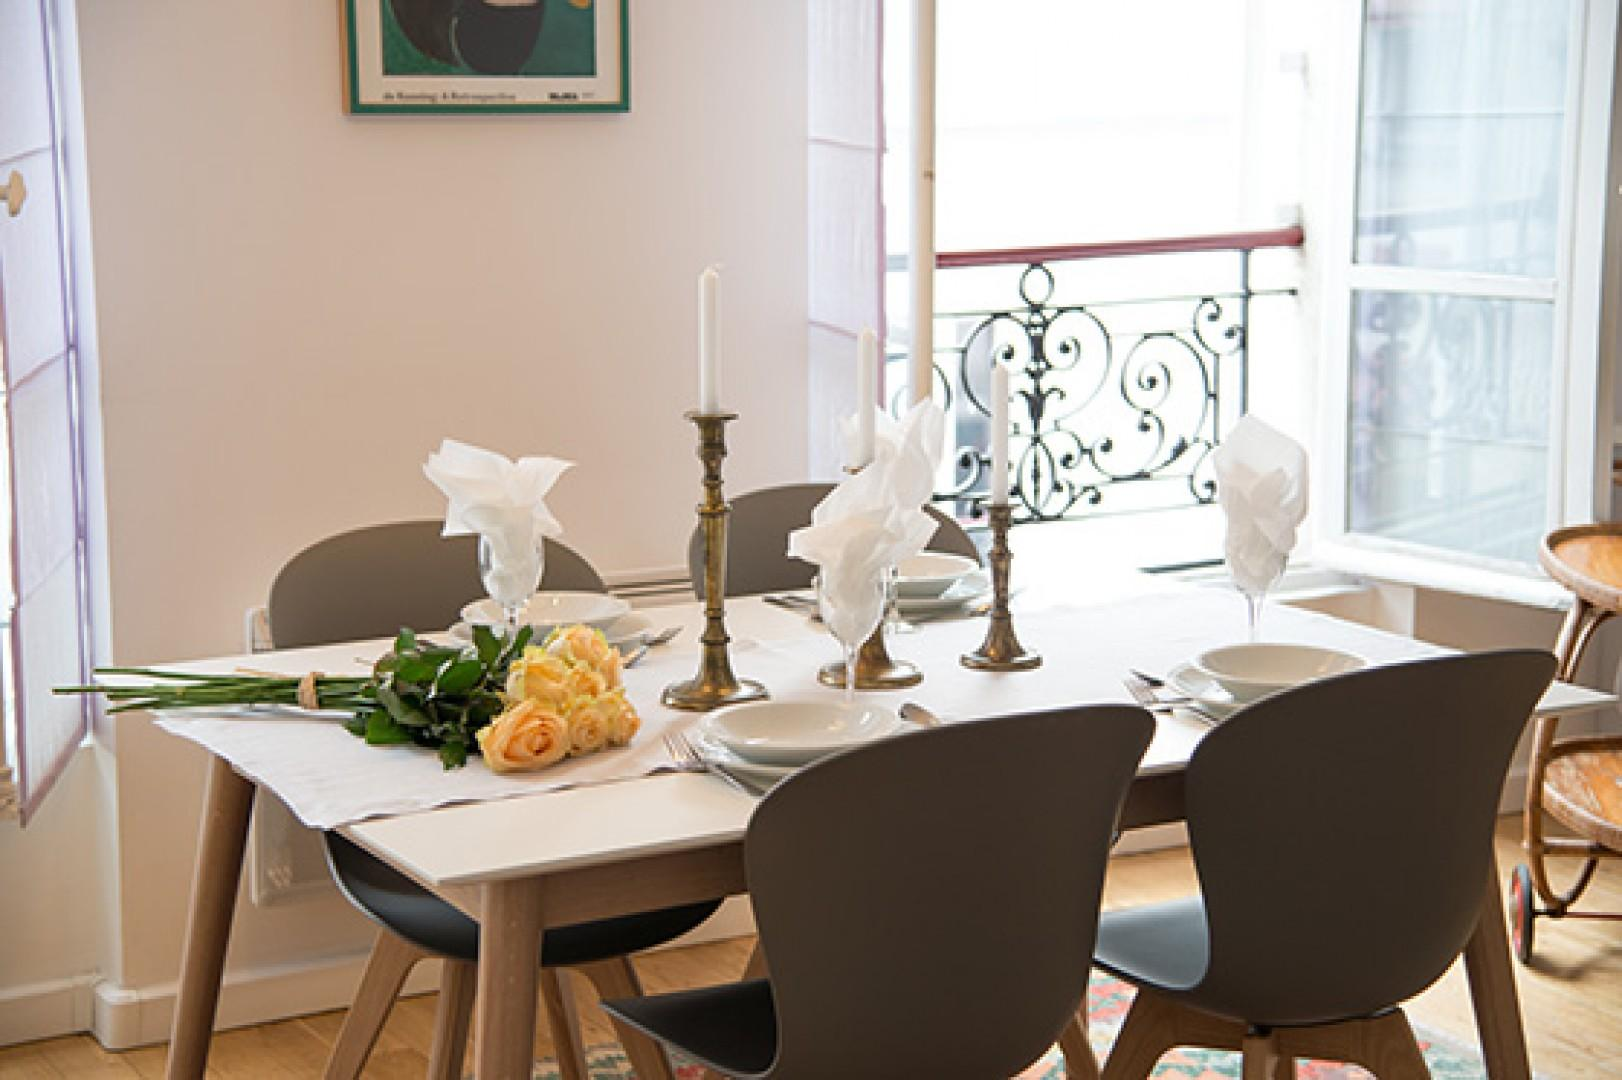 You will love hosting dinners in this beautiful space!